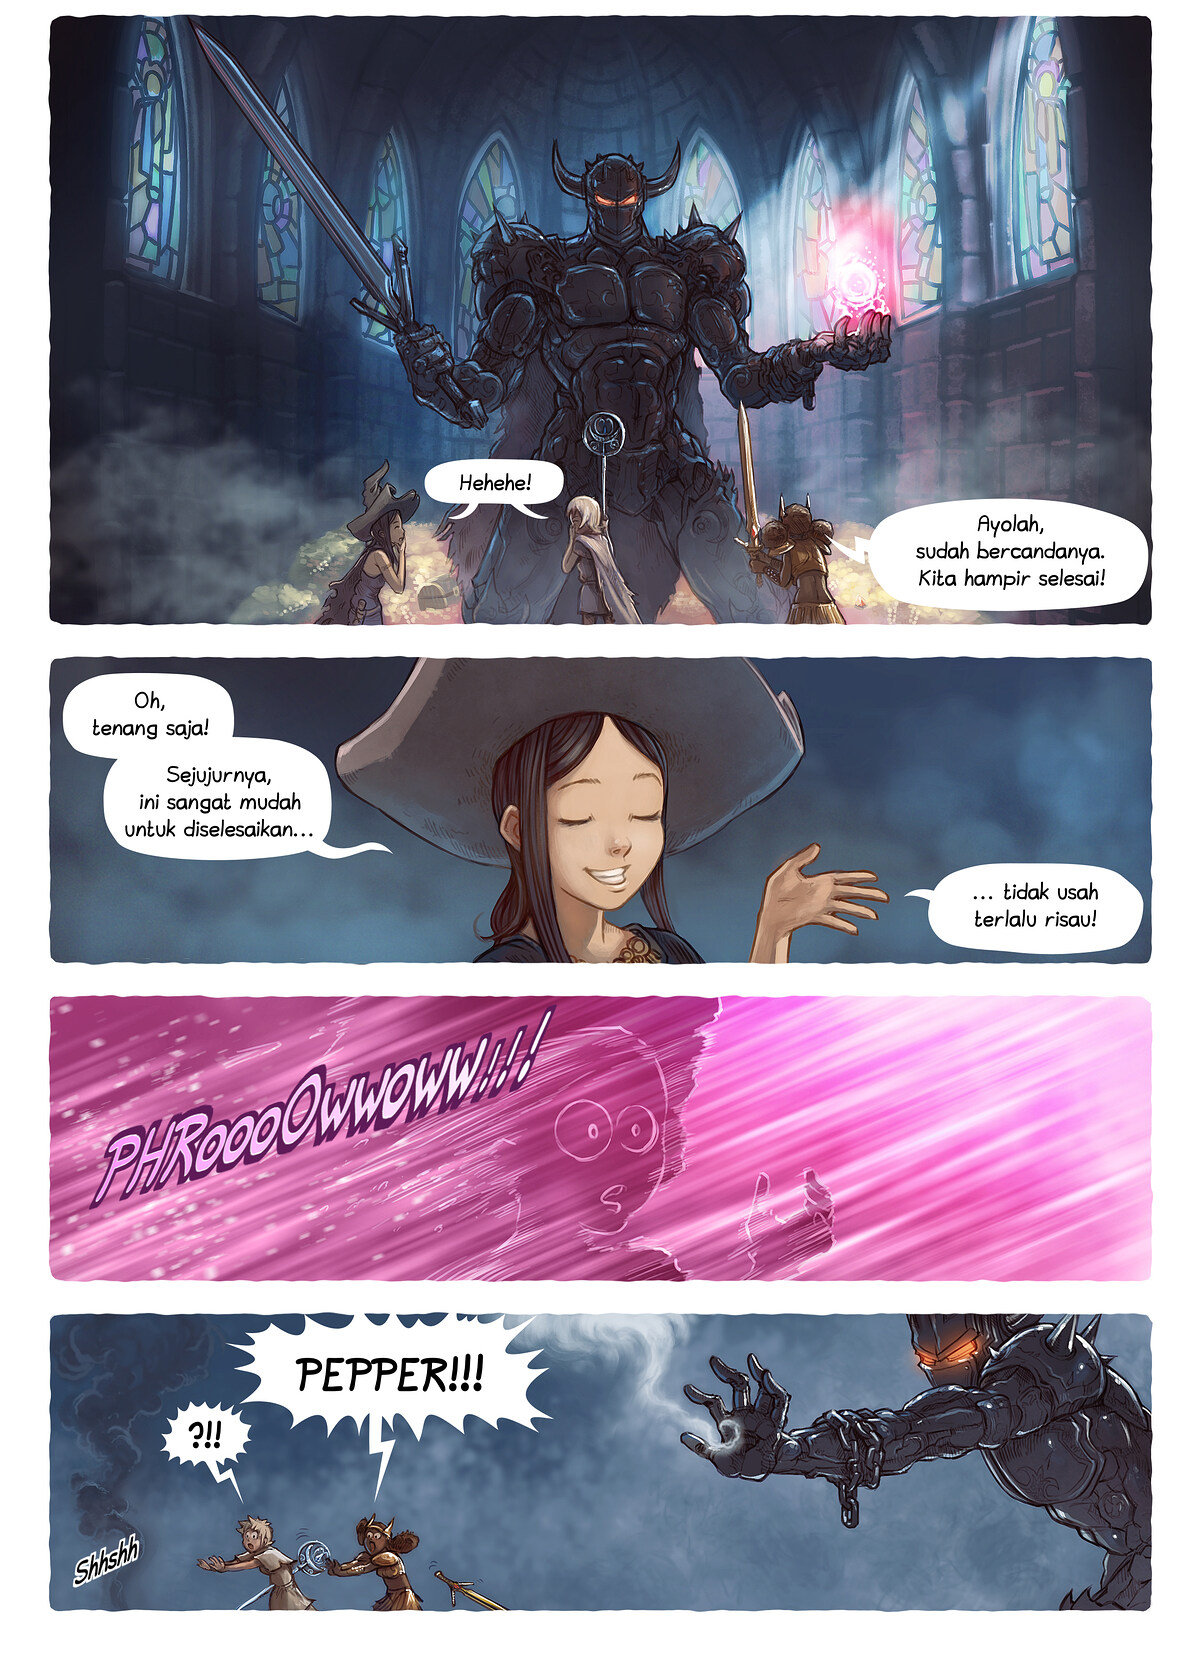 A webcomic page of Pepper&Carrot, episode 13 [id], halaman 4